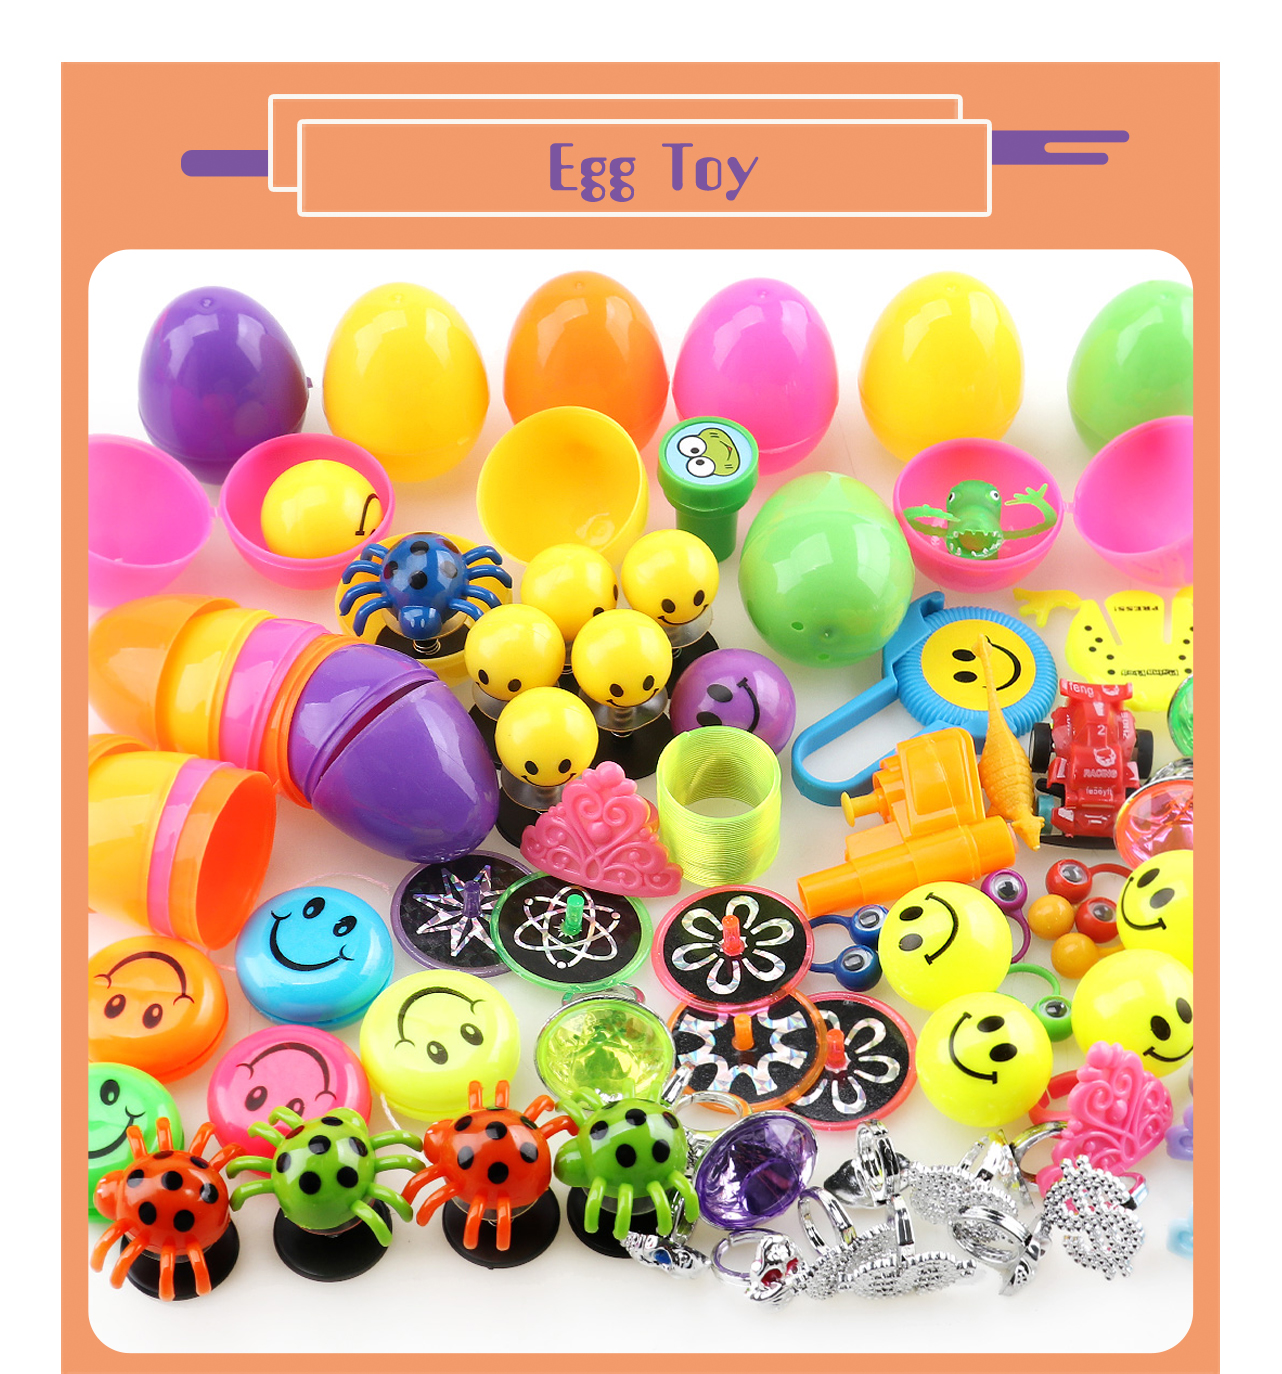 Toys & Hobbies Cooperative Novelty Products Toy Colored Plastic Whistle Action Figure Funny Gadgets For Kids Toys Beauty Gift Joke